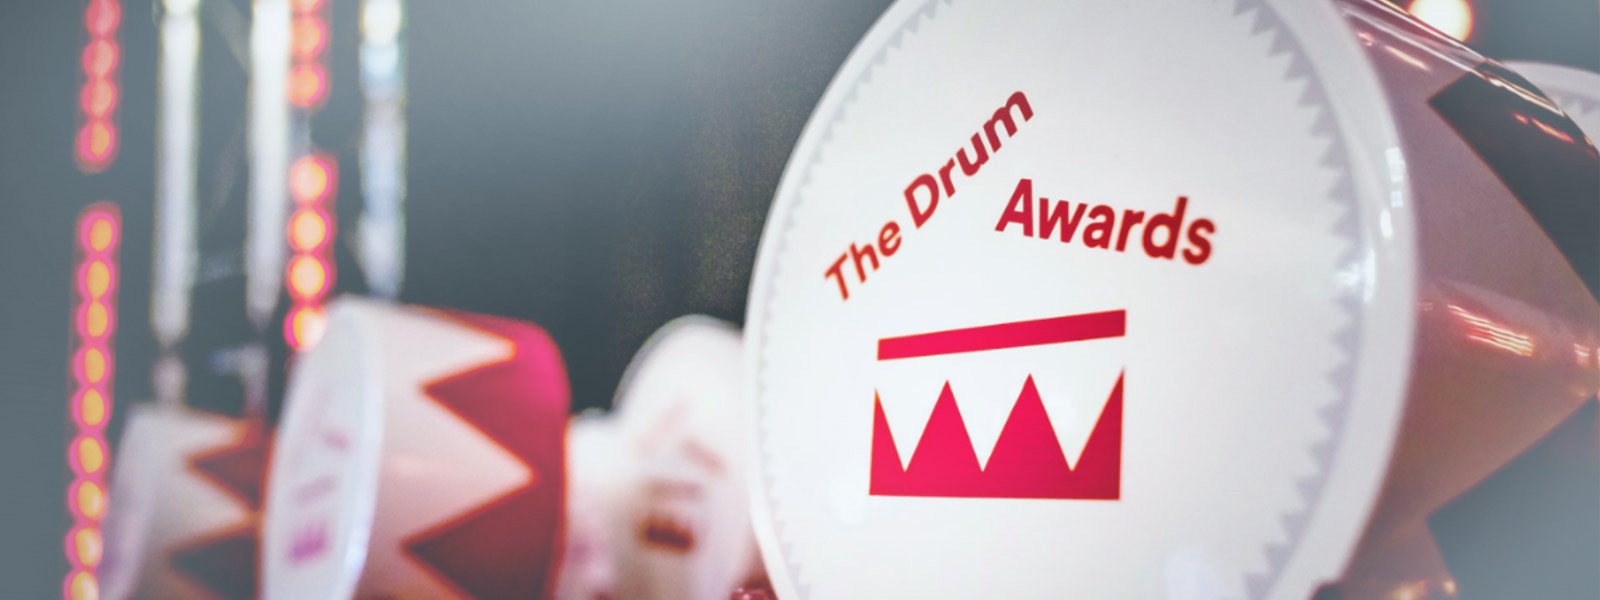 Parkhouse wins 5 Awards at the Drum Recommends